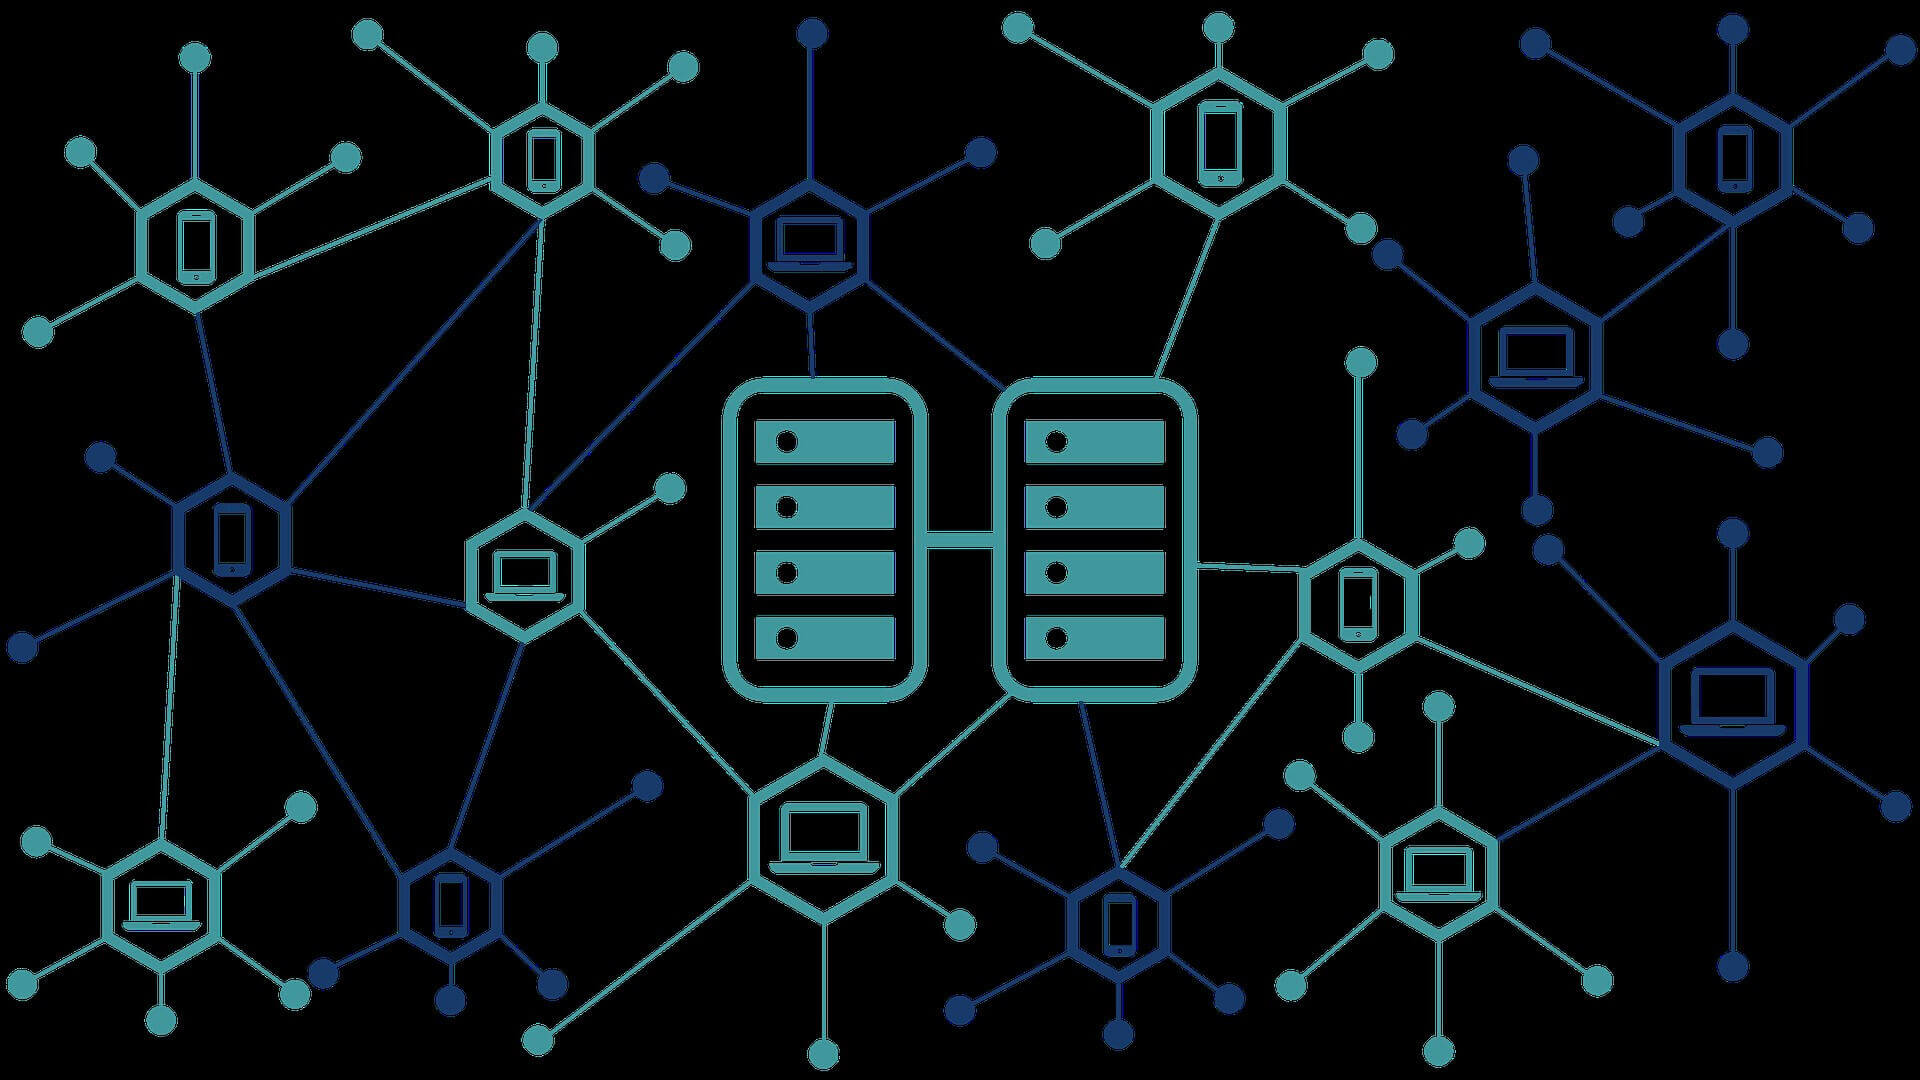 Blockchain Technology: What Is it and How Does It Work?